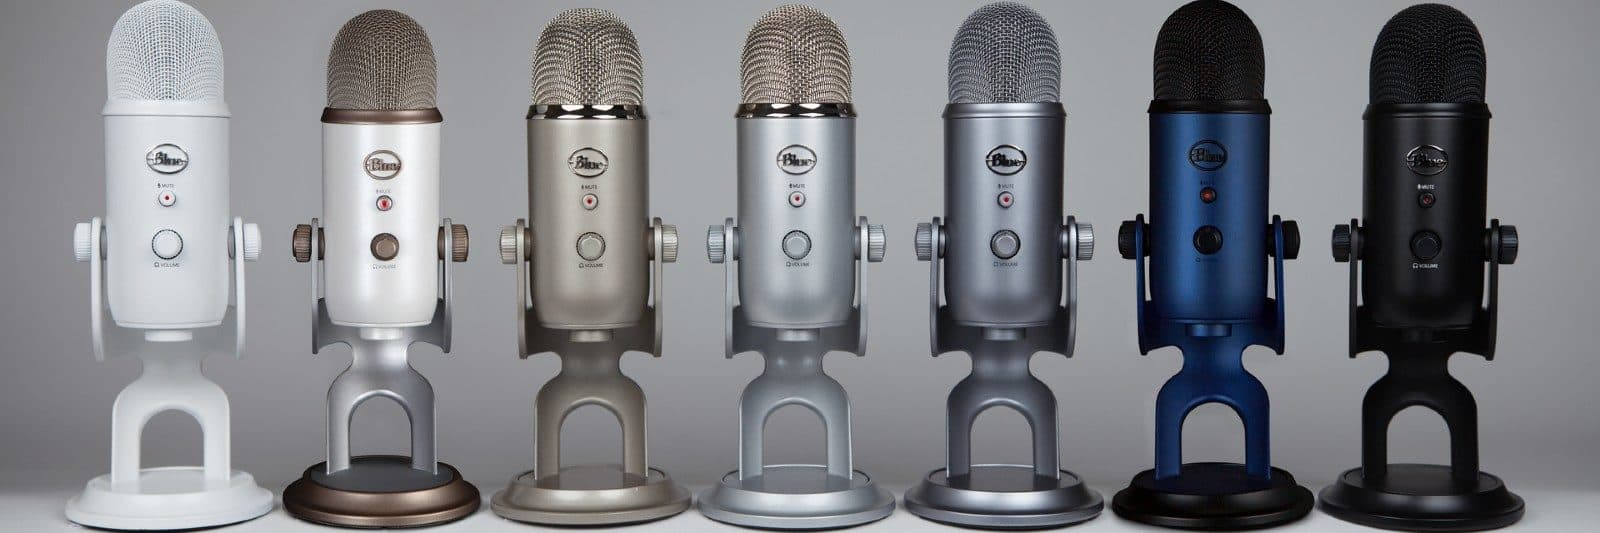 Blue Yeti USB Mic Review Banner Image